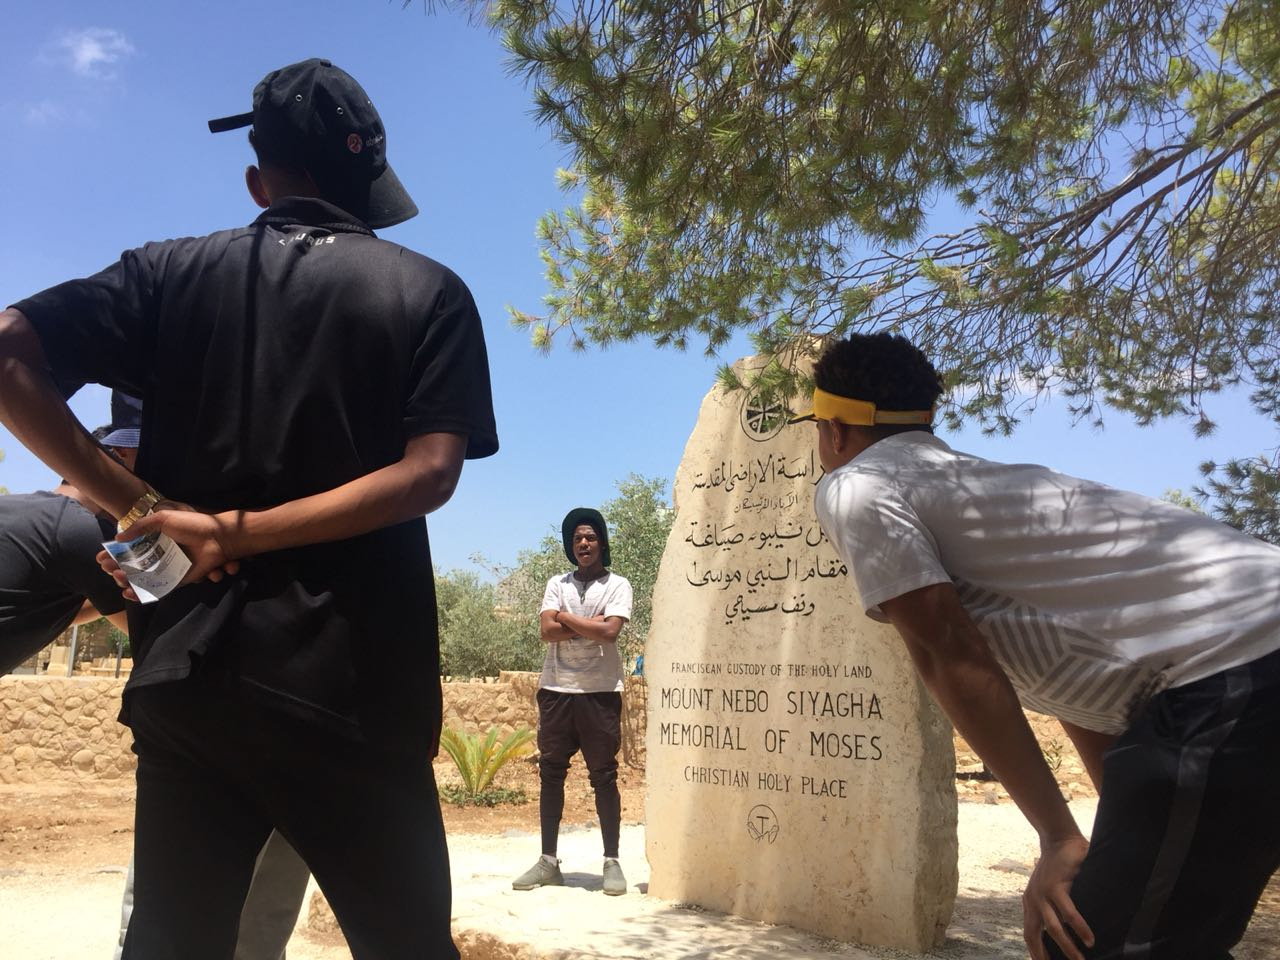 Mount Nebo - From Mount Nebo,you can see the Promised Land that God showed Moses, as well as the Dead Sea and Israel.